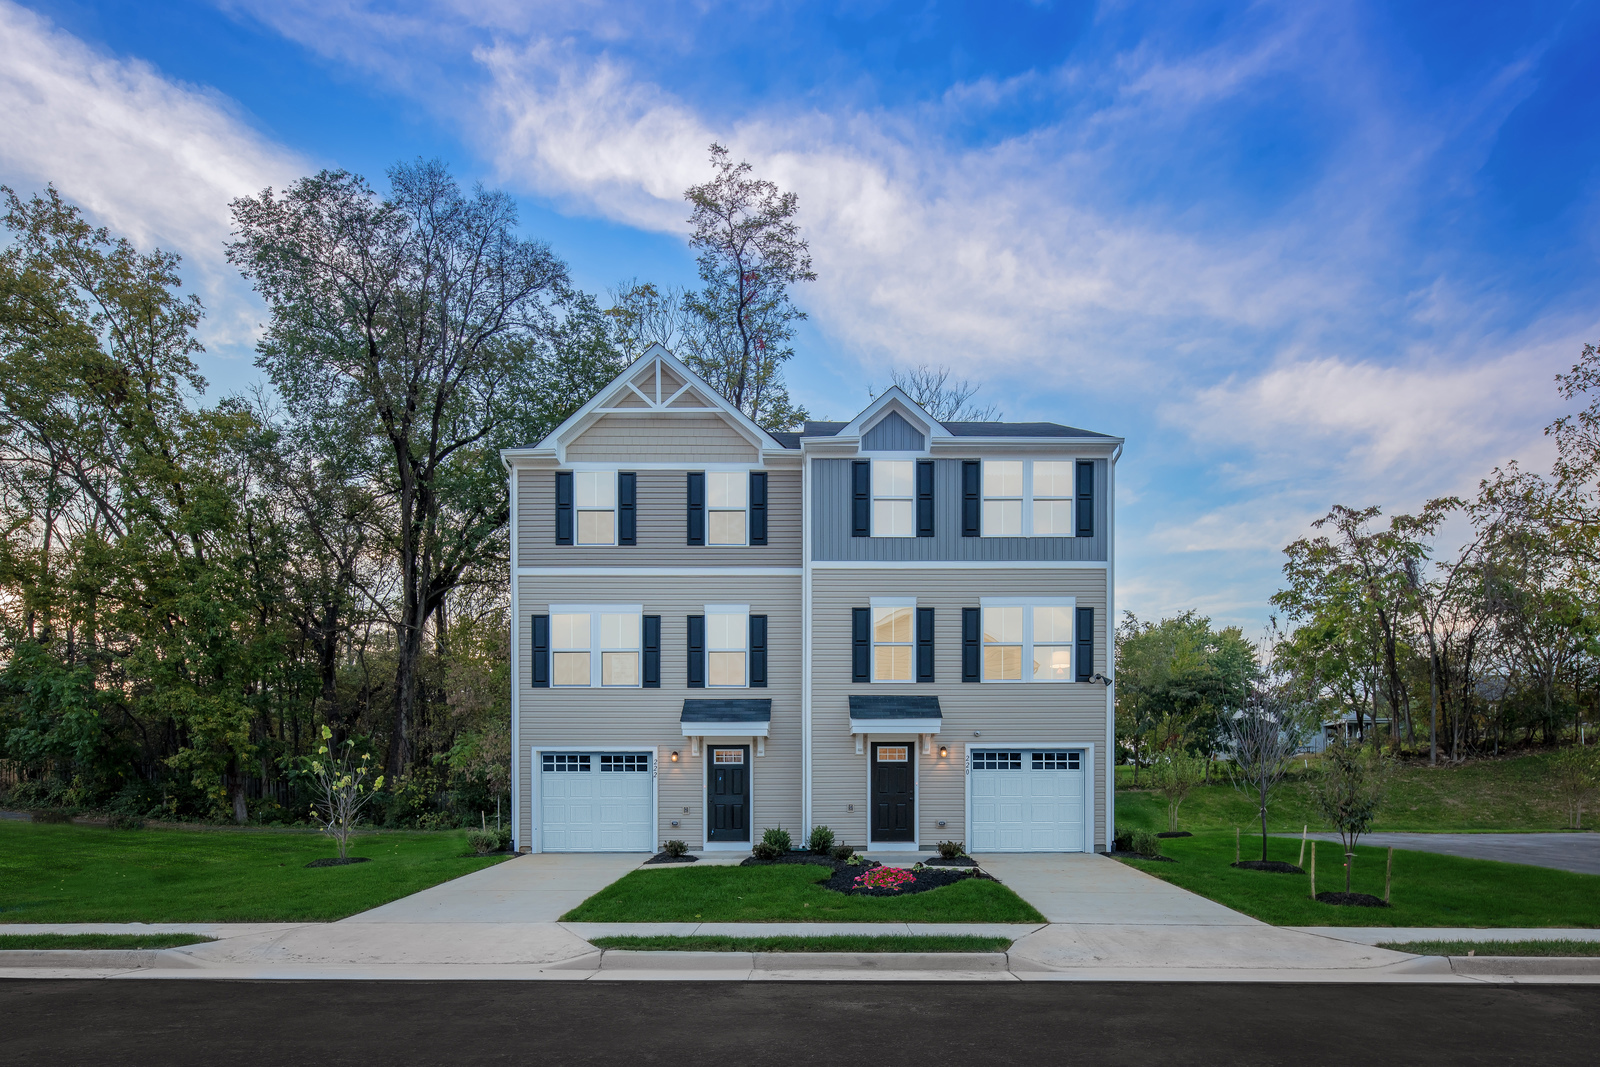 Ridgely Forest Townhomes